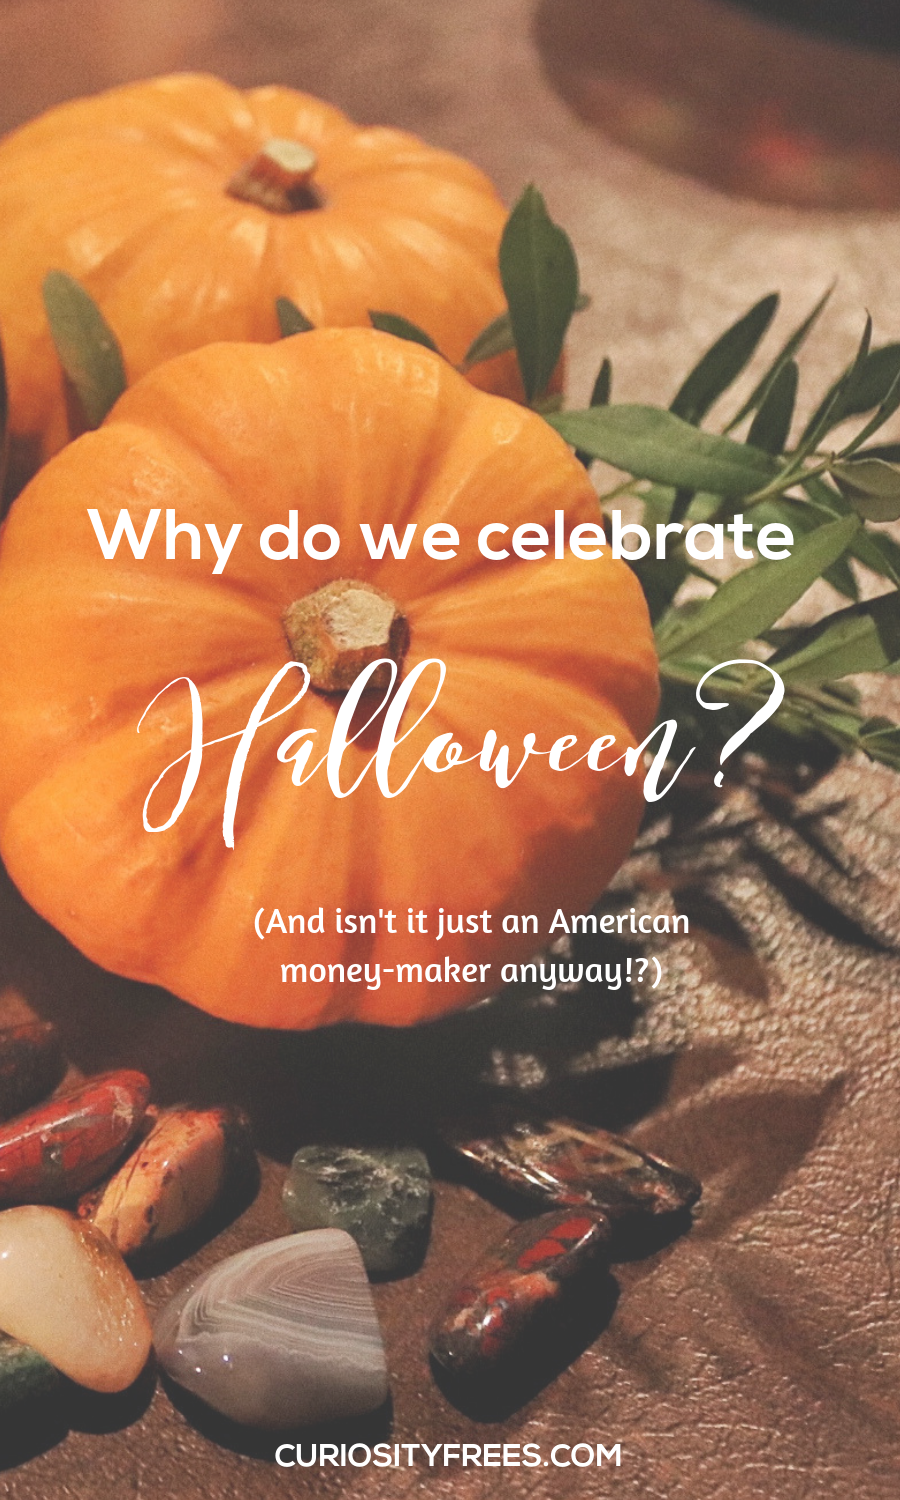 Why do we celebrate Halloween? Who was the first trick or